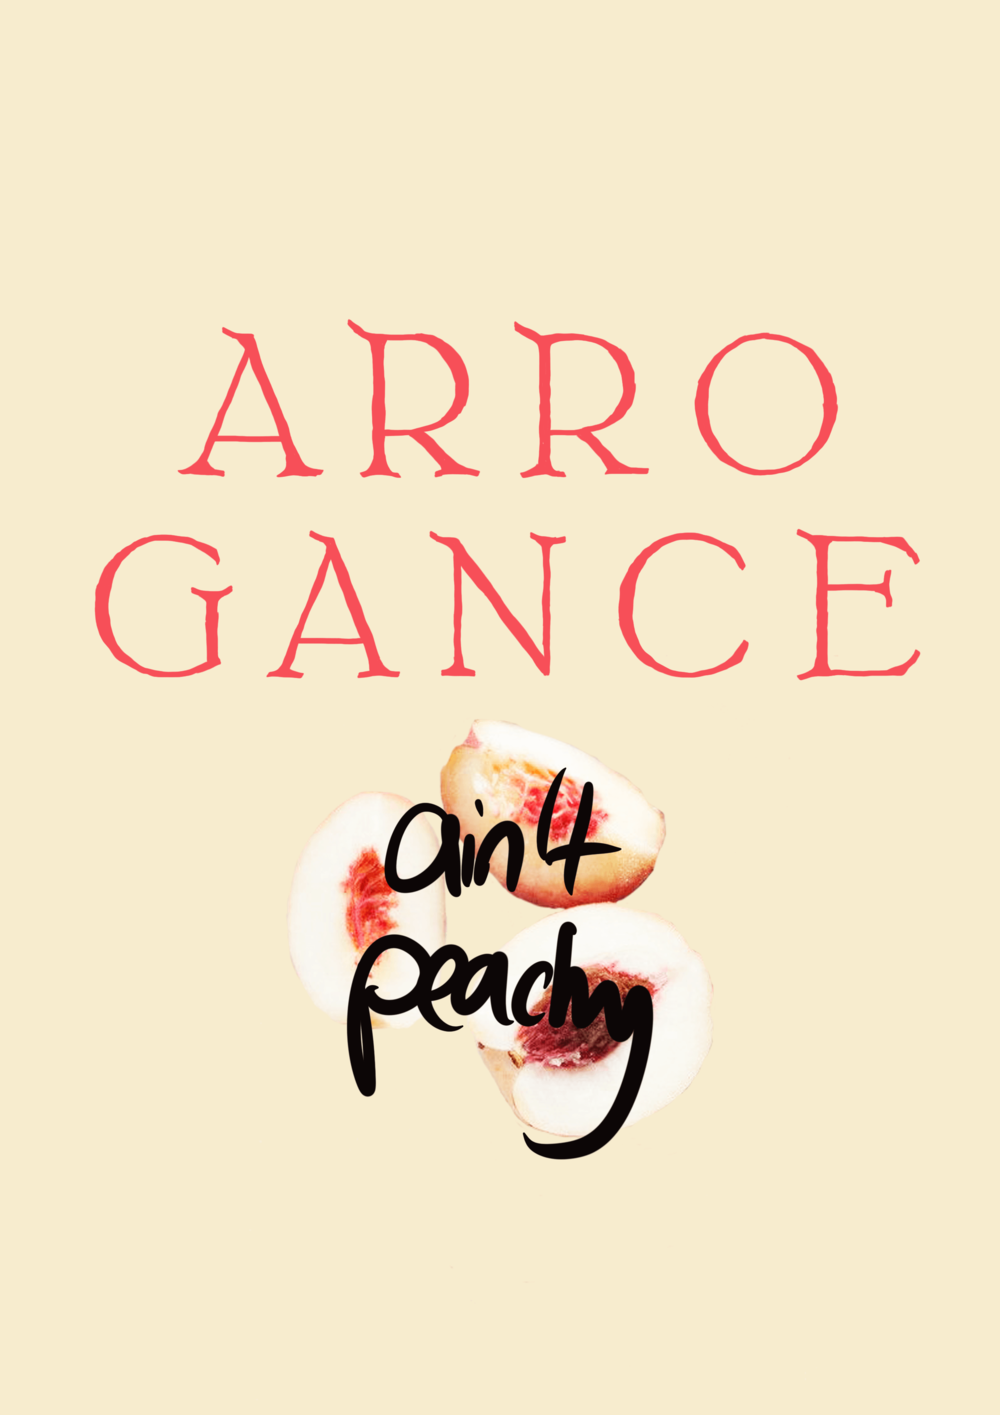 arrogance ain't peachy // phylleli design studio and blog